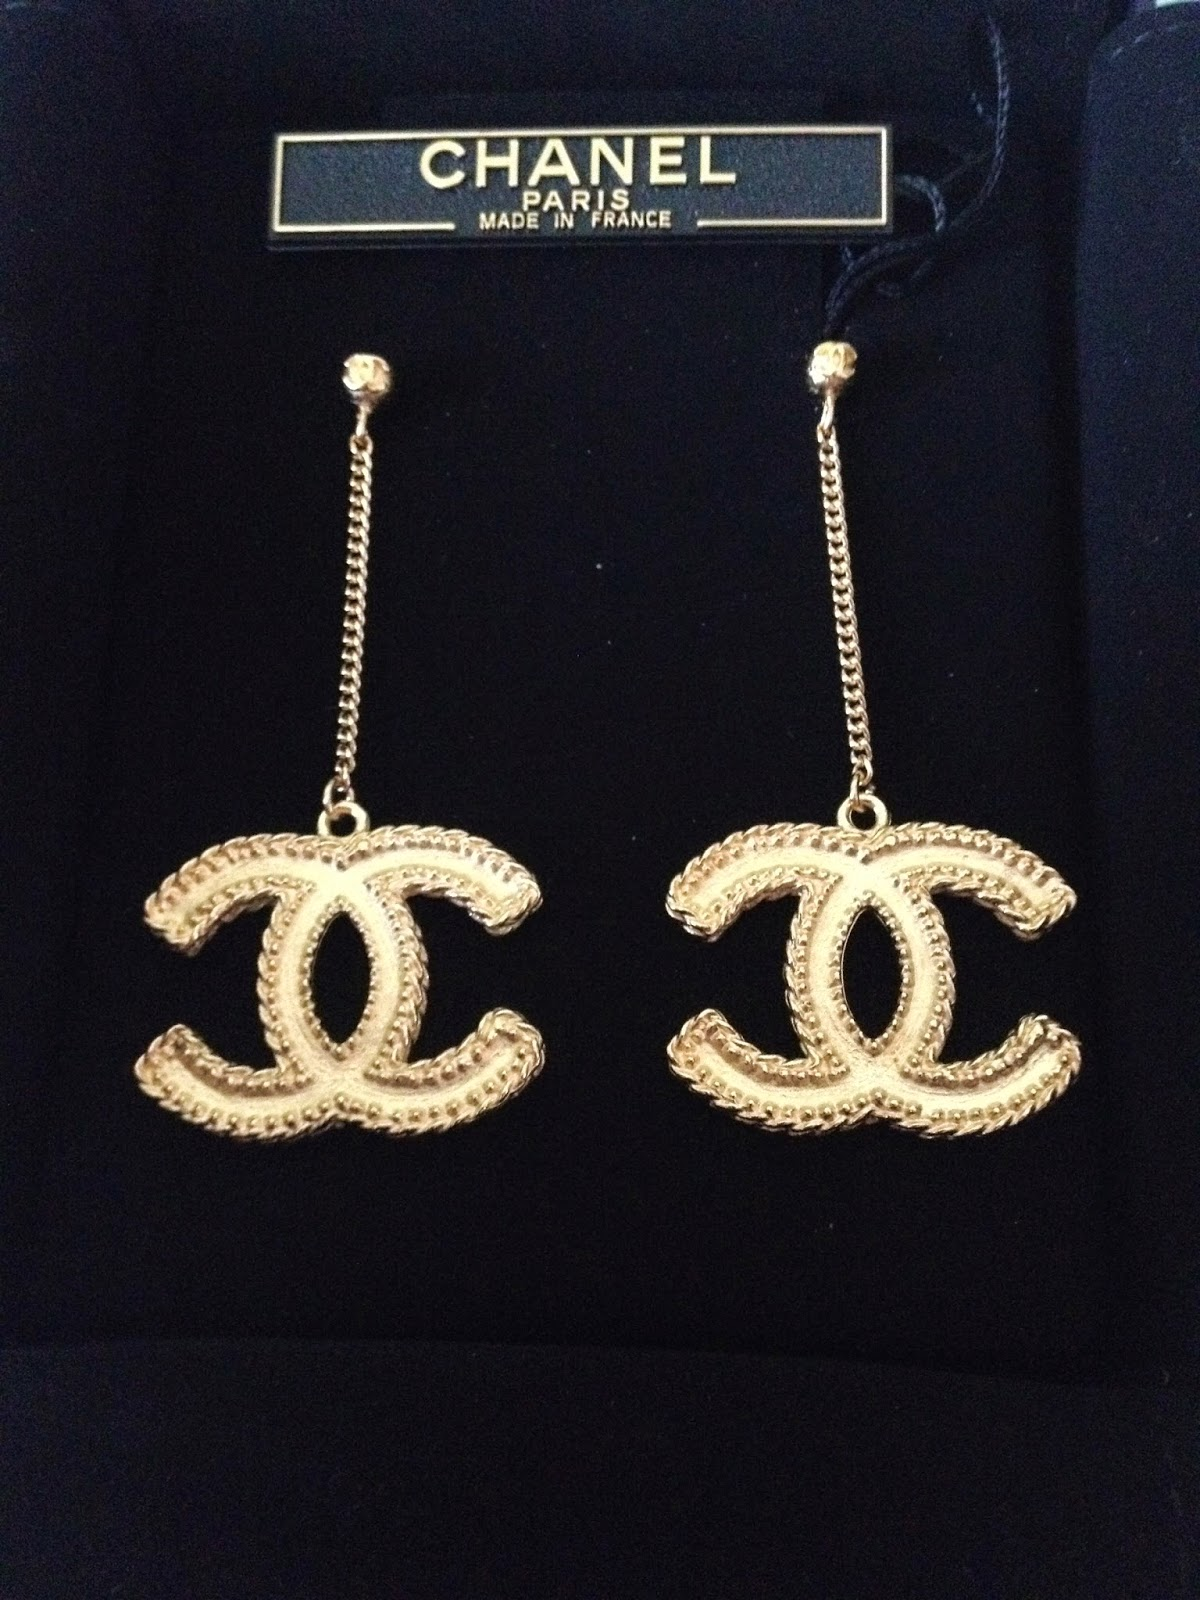 Chanel earrings for sale: Chanel Earrings LARGE CC LOGO ...